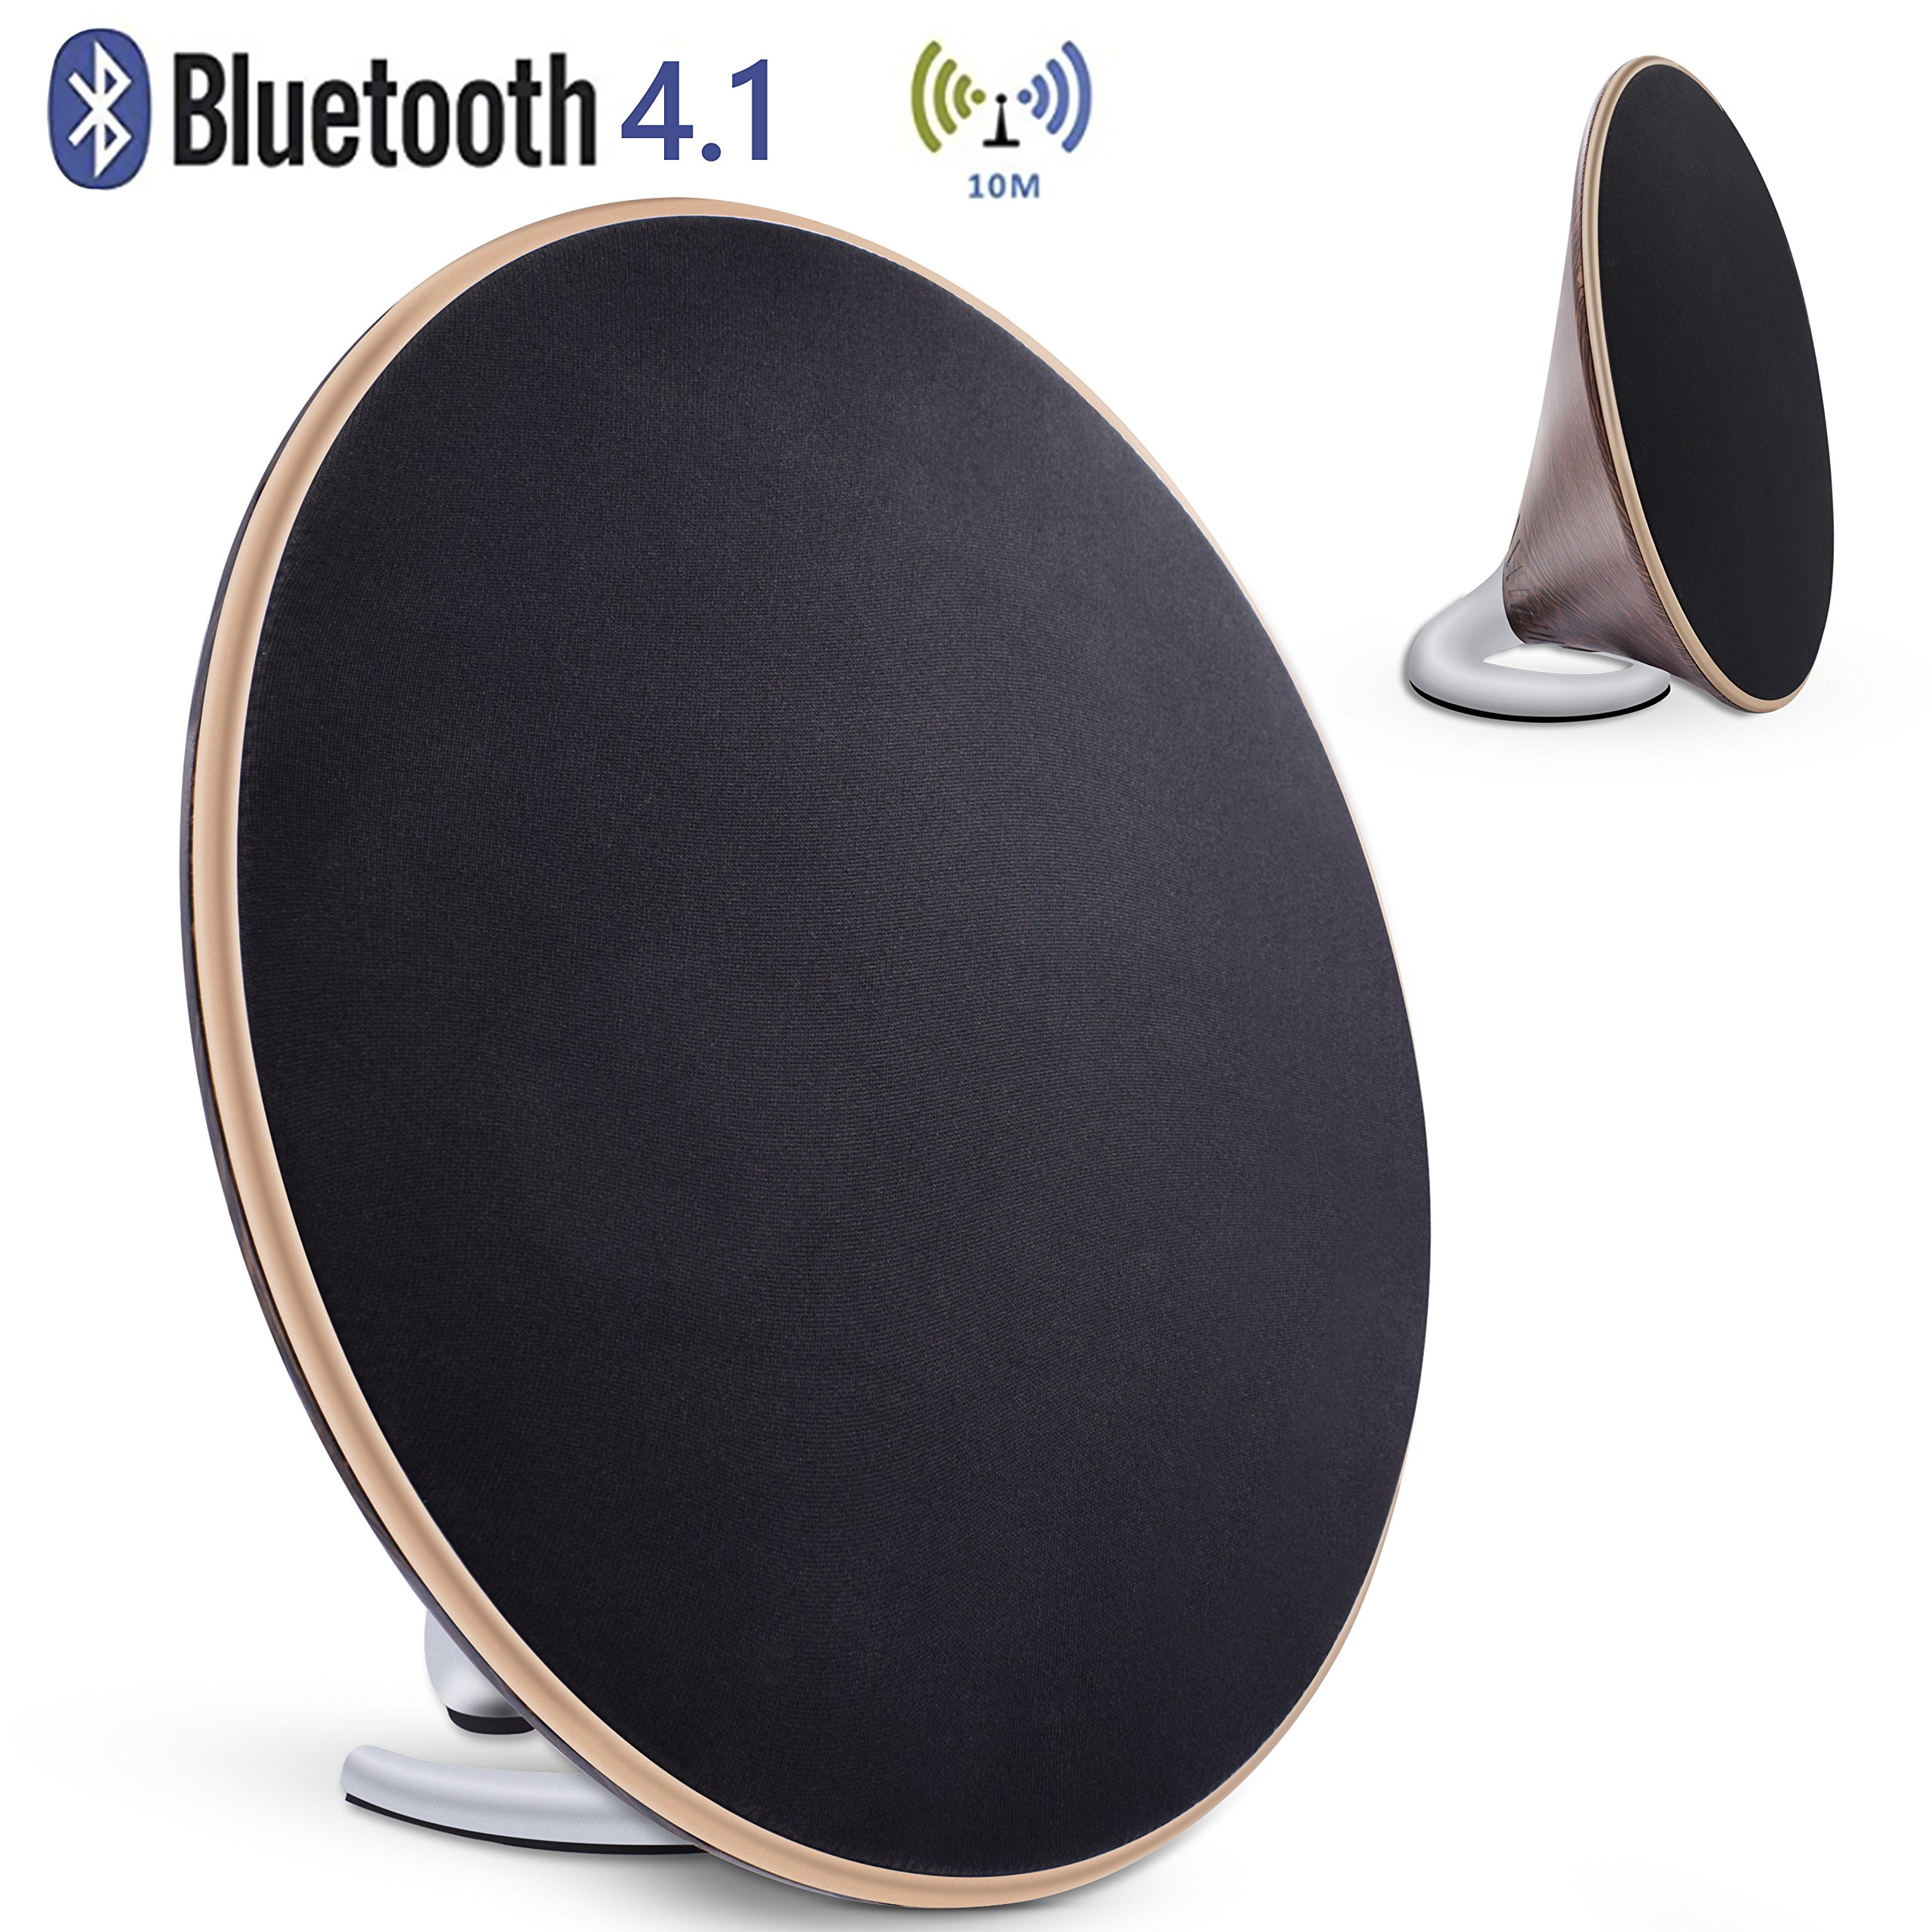 Bookshelf Speaker with Bluetooth - Retro wooden speaker, 40W Powered Bluetooth Speaker, 3D Stereo Surround Speaker with 4 Equalize Modes and DSP Technology by KEY IDEA